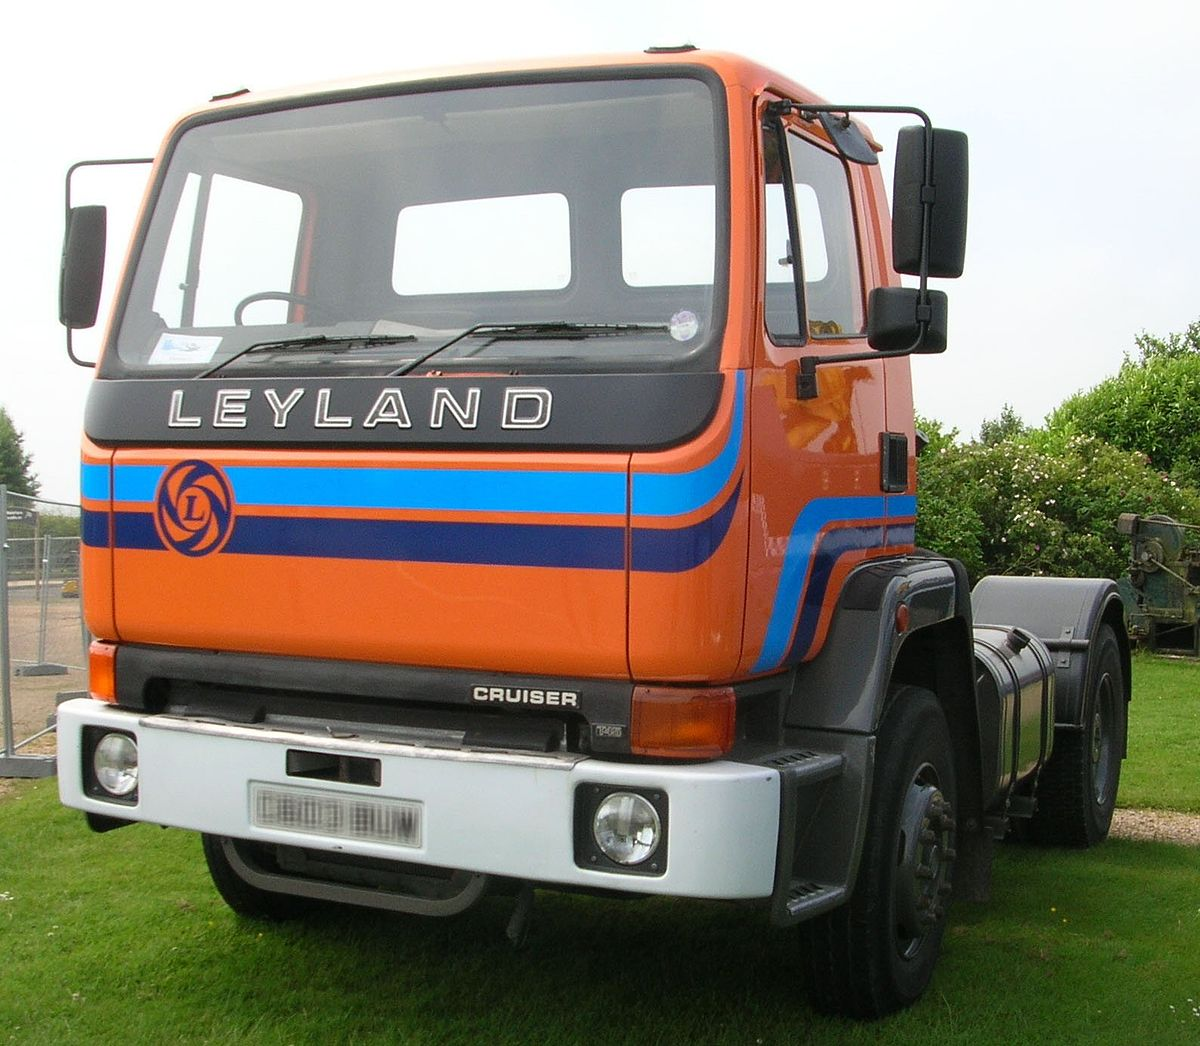 leyland cruiser � wikipedia